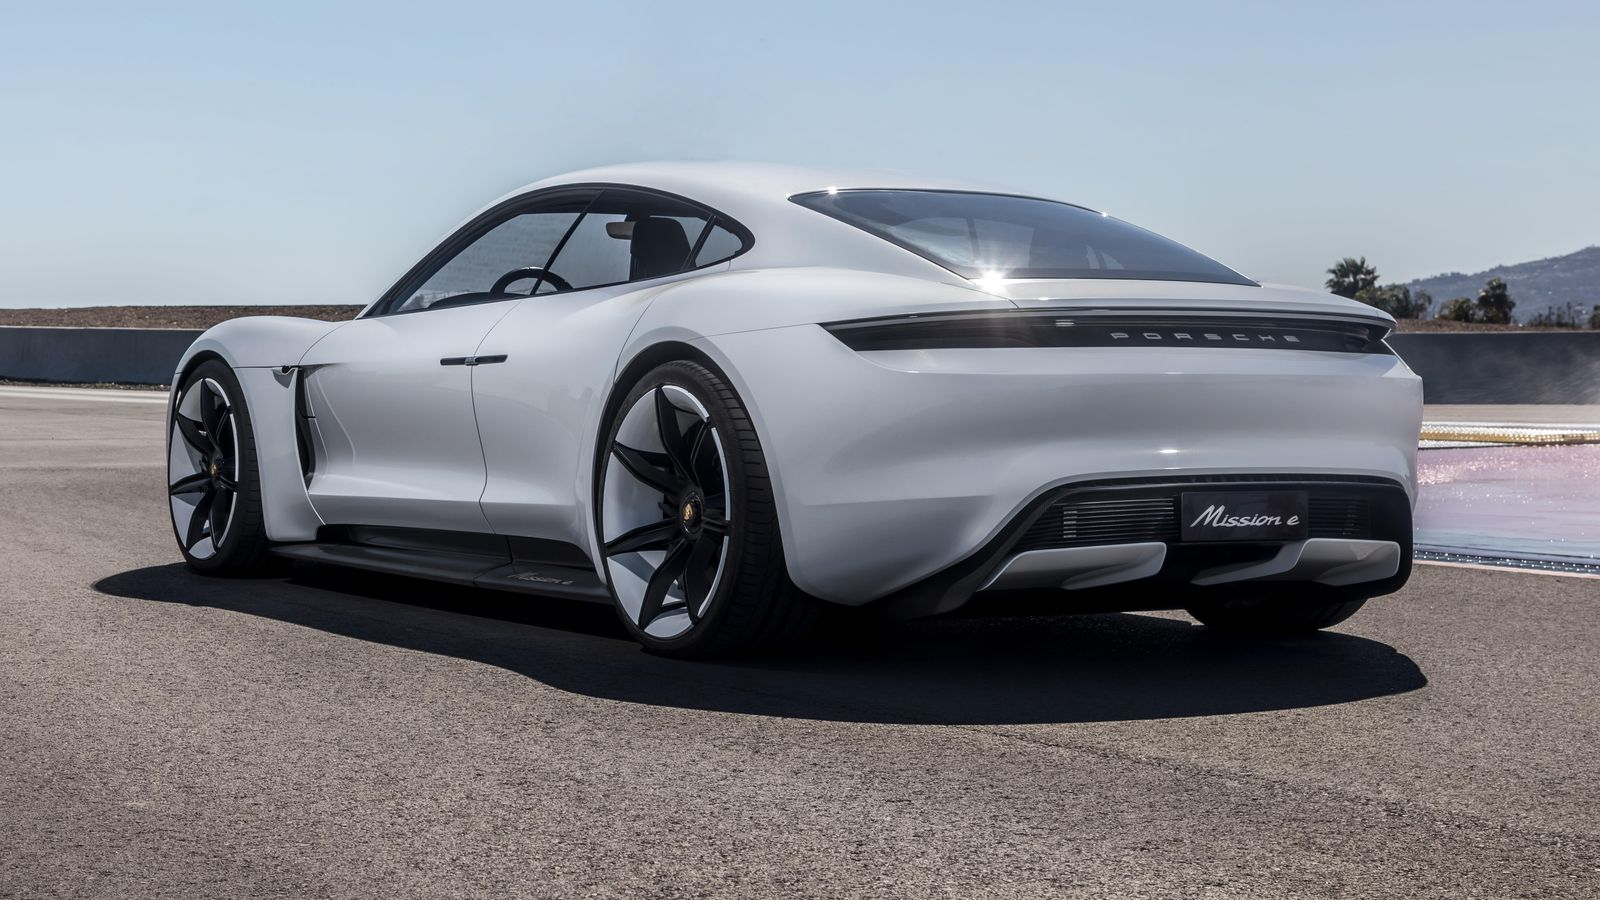 Porsche collects loads of four figure deposits for Taycan EV 1600x900